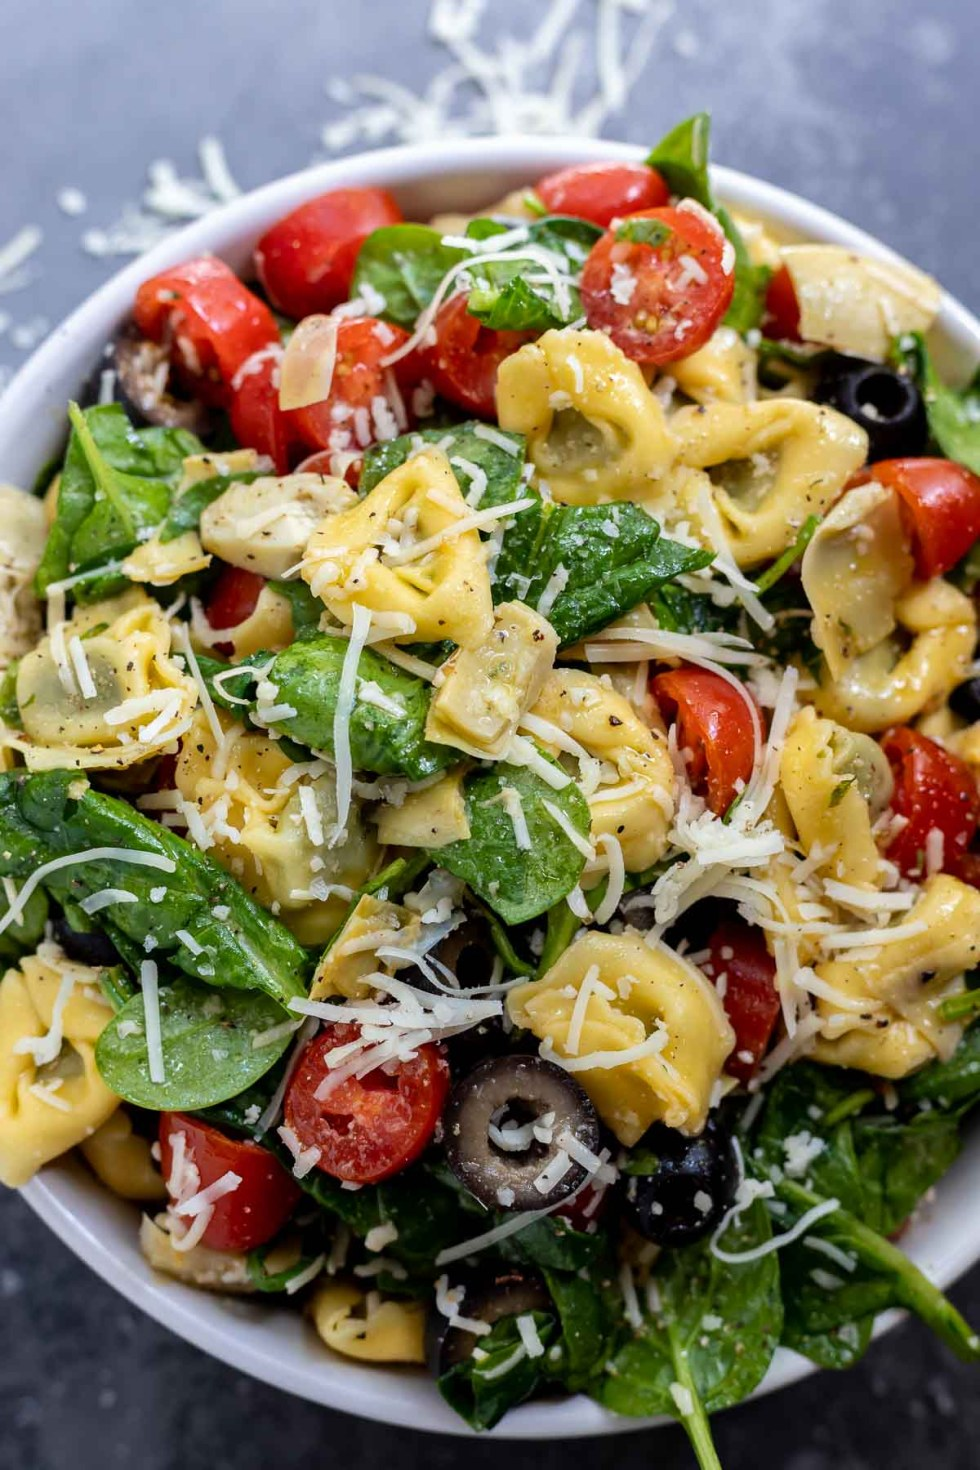 tortellini salad with veggies and parmesan cheese in white bowl